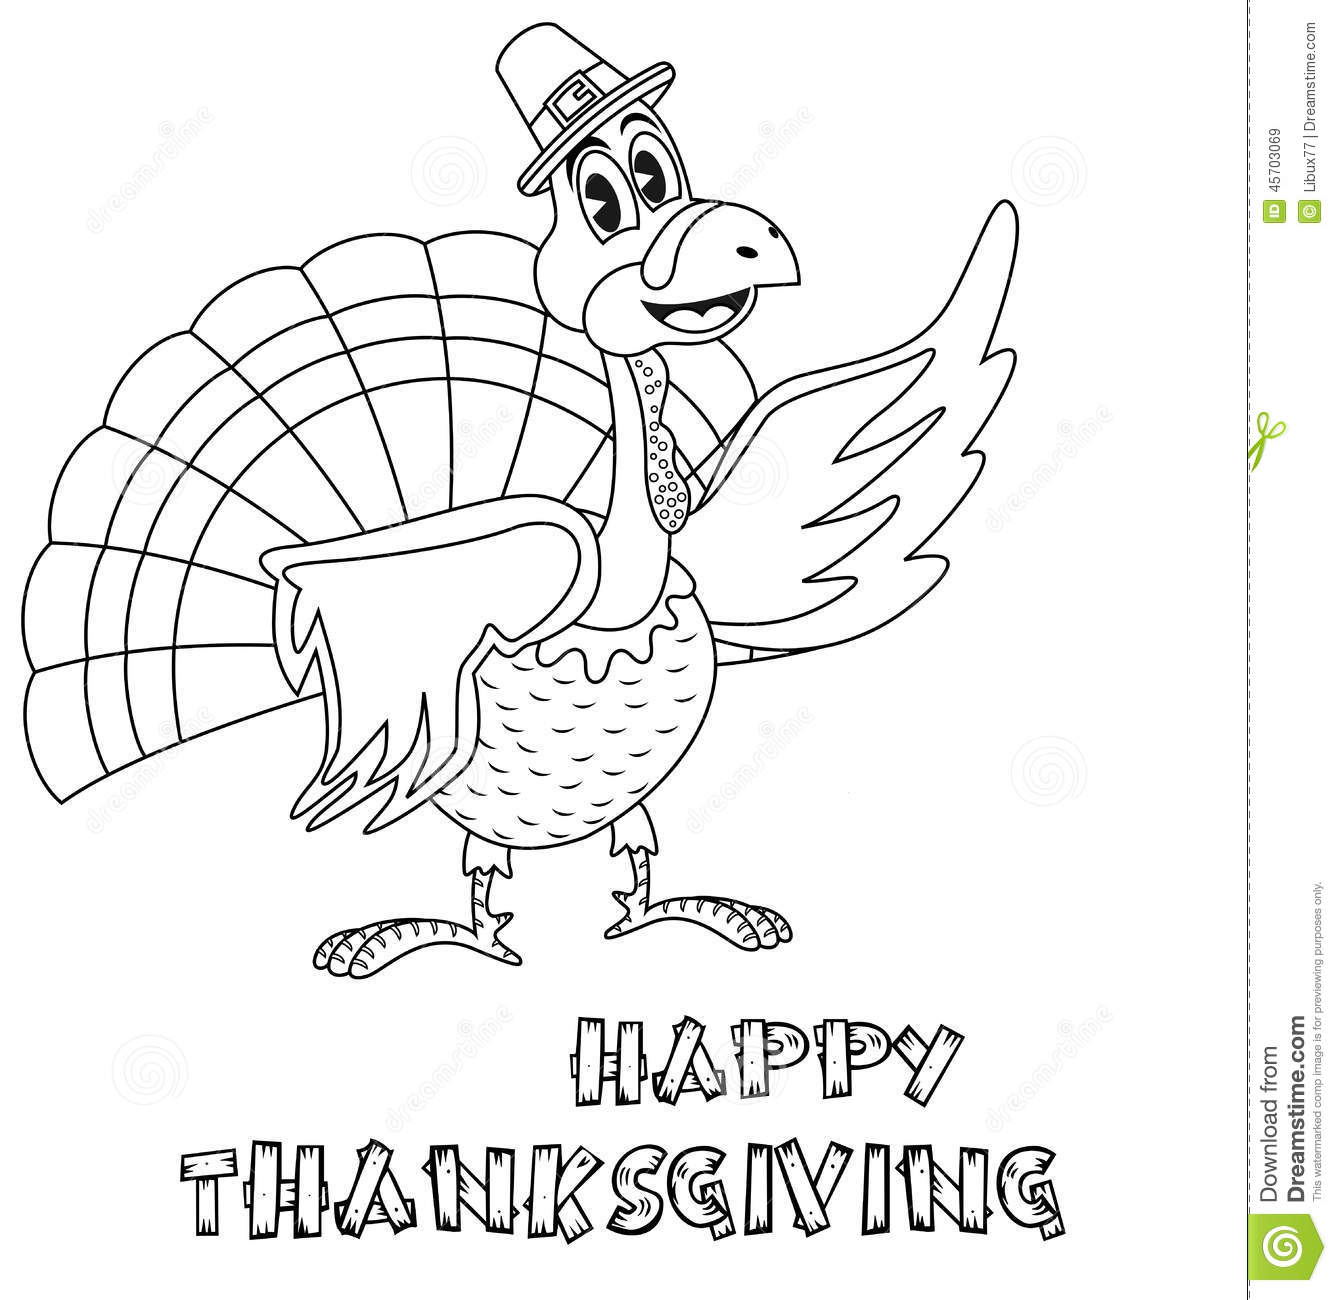 Thanksgiving Abstract Coloring Pages : Thanksgiving turkey coloring page stock vector image